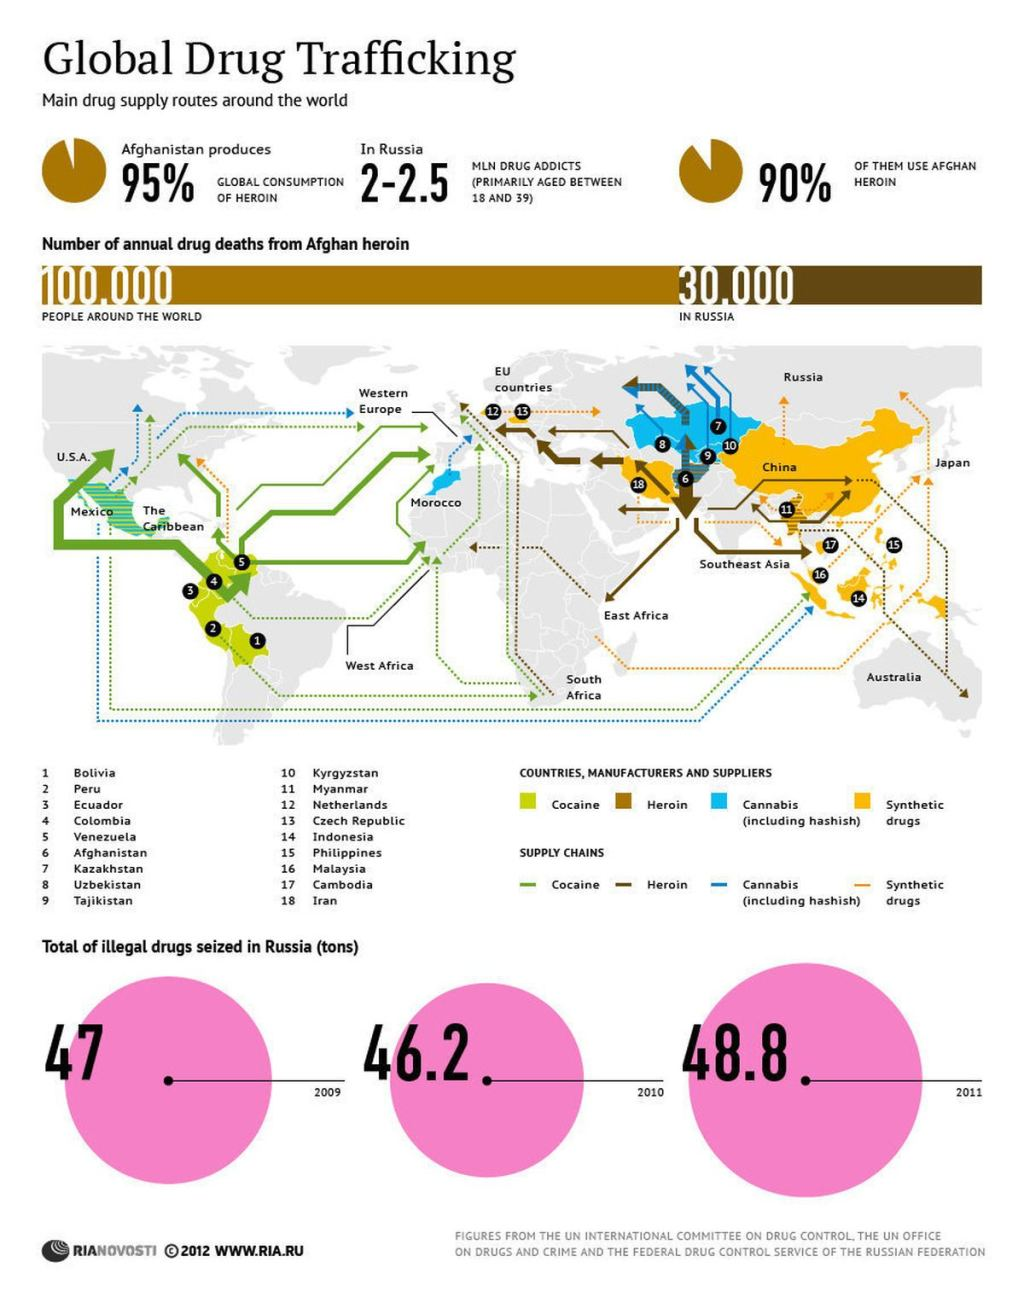 00 RIA-Novosti Infographics. Gobal Drug Trafficking. 2012